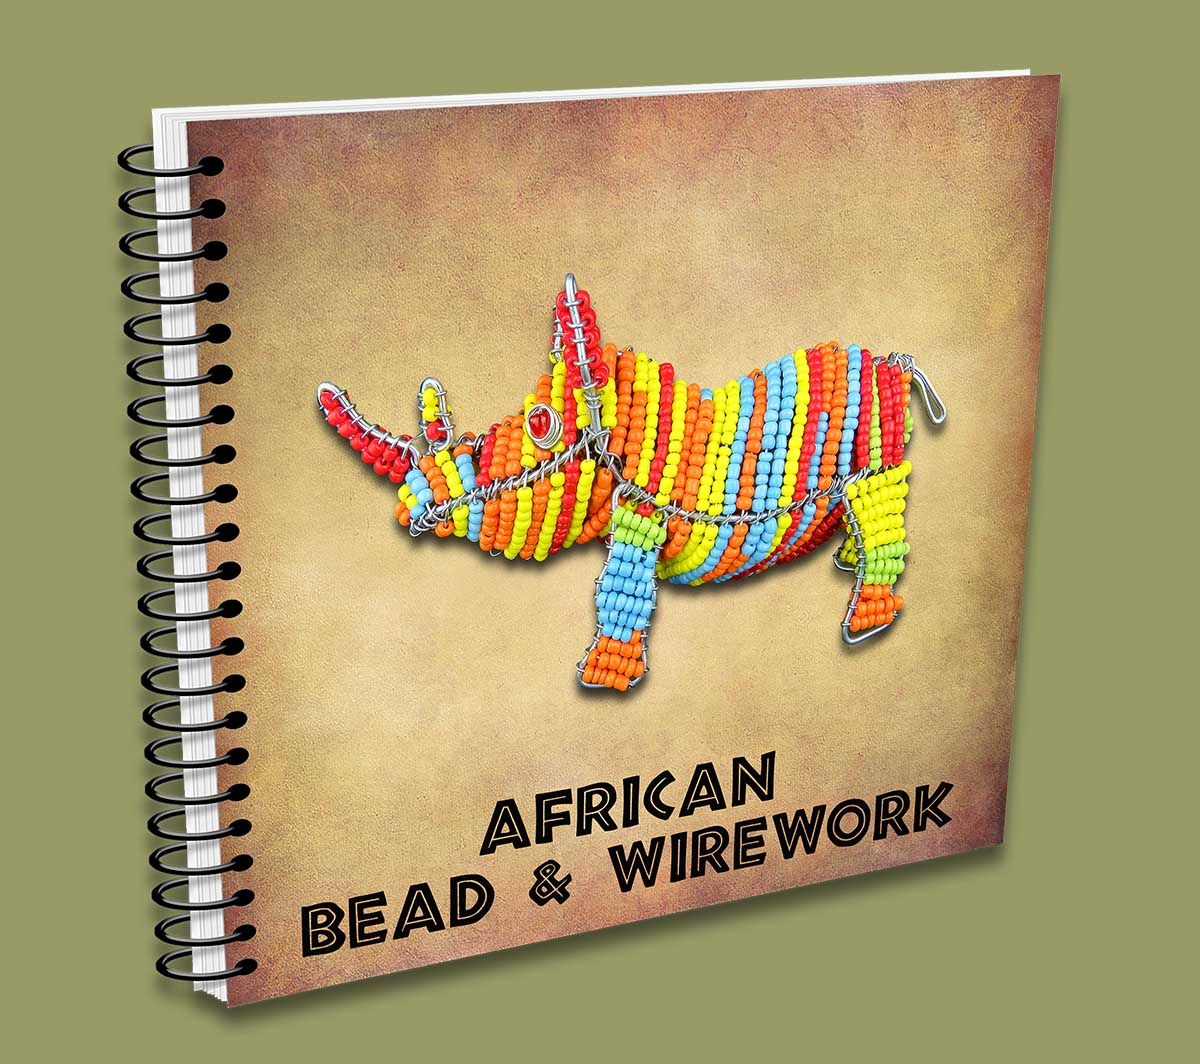 african-beads-and-wirework-catalogue-2